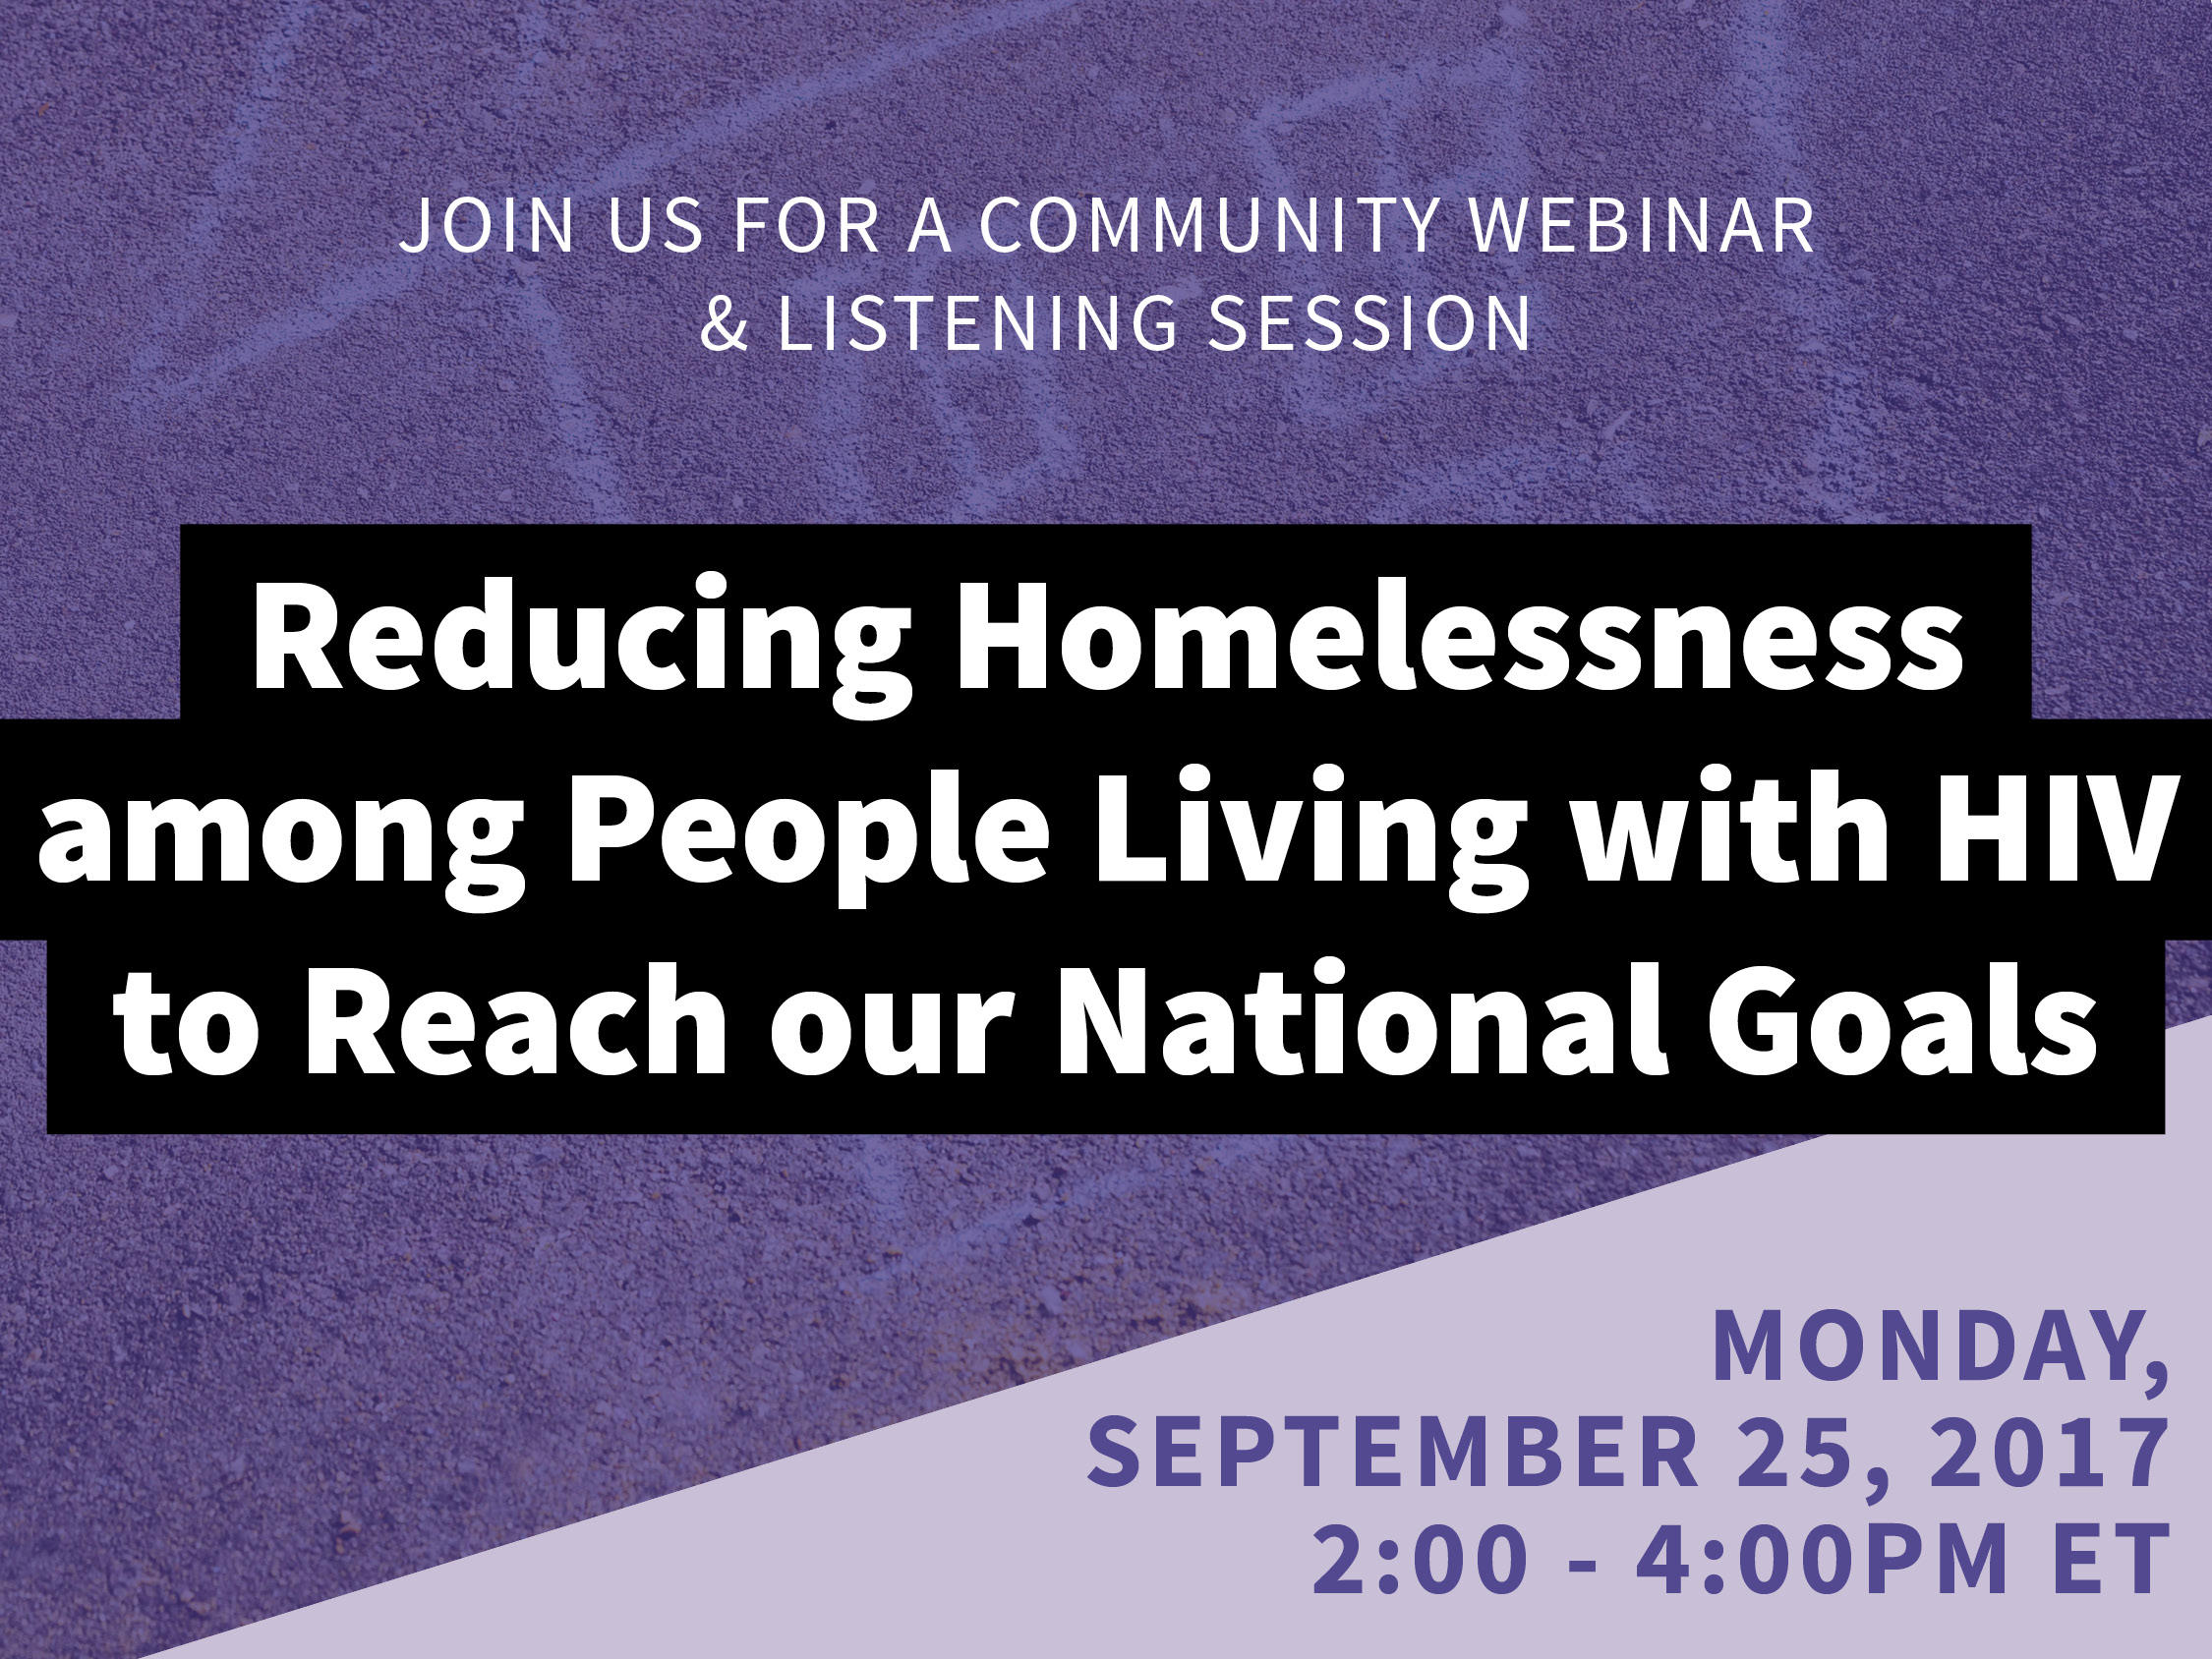 Reducing Homelessness among People Living with HIV to Reach our National Goals